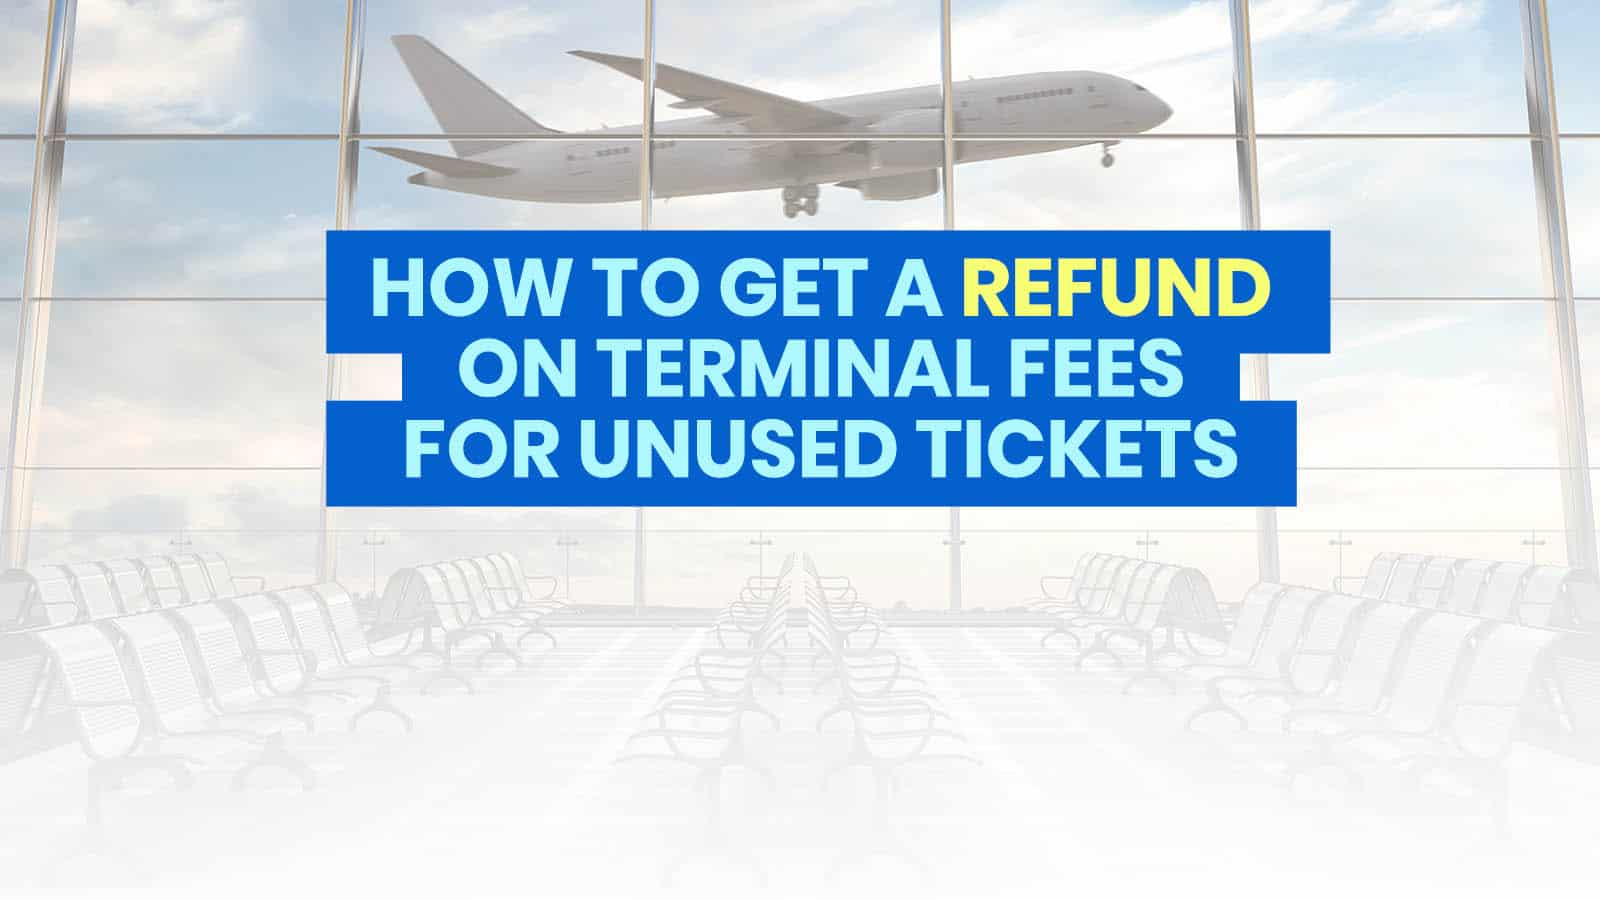 HOW TO GET A REFUND ON TERMINAL FEES & TAXES: Cebu Pacific, AirAsia, Philippine Airlines